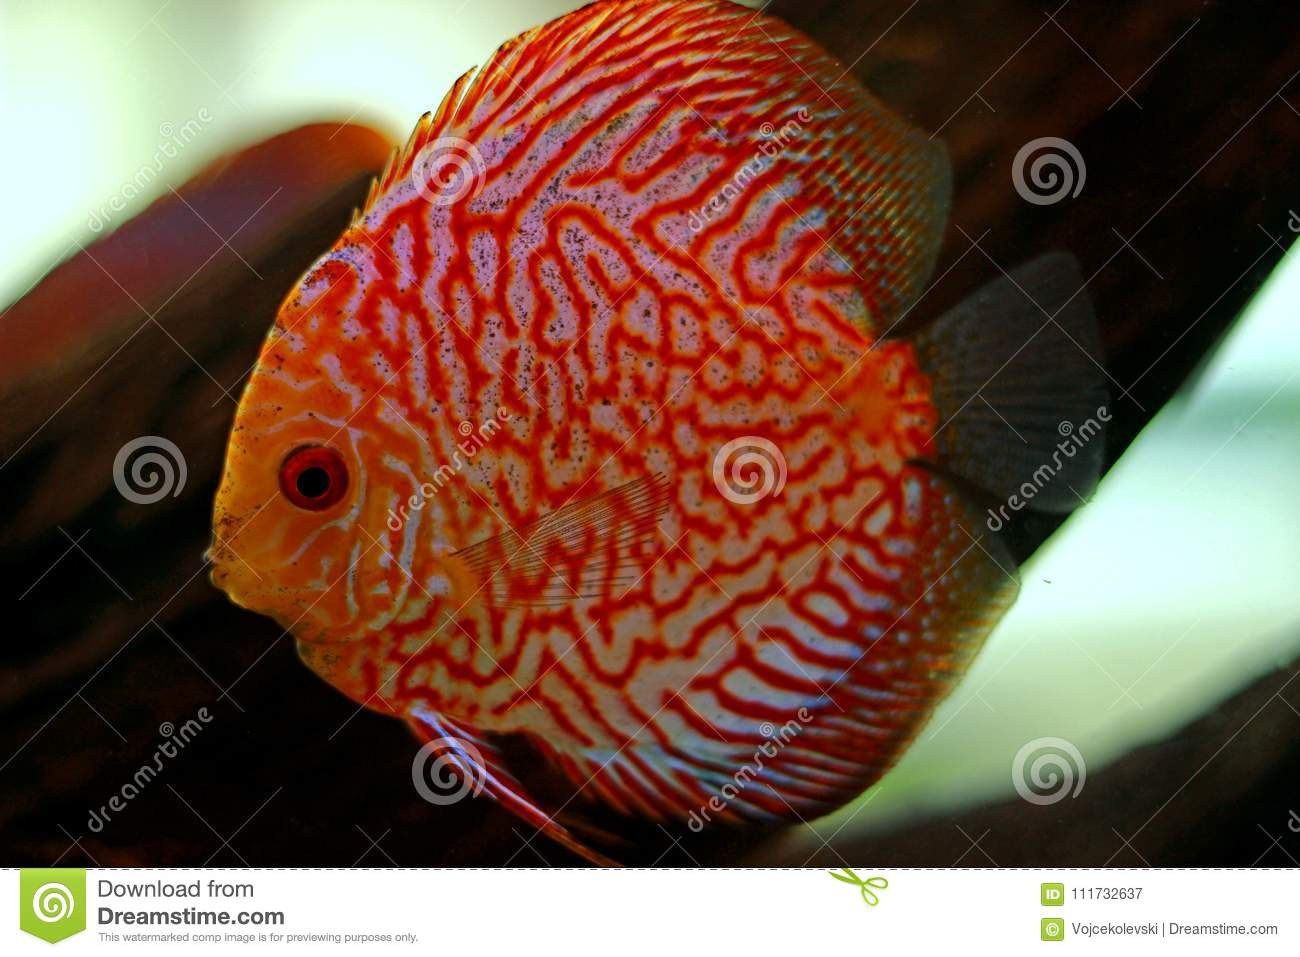 Discus Fish In Freshwater Aquarium Stock Image - Image of aquascape ...